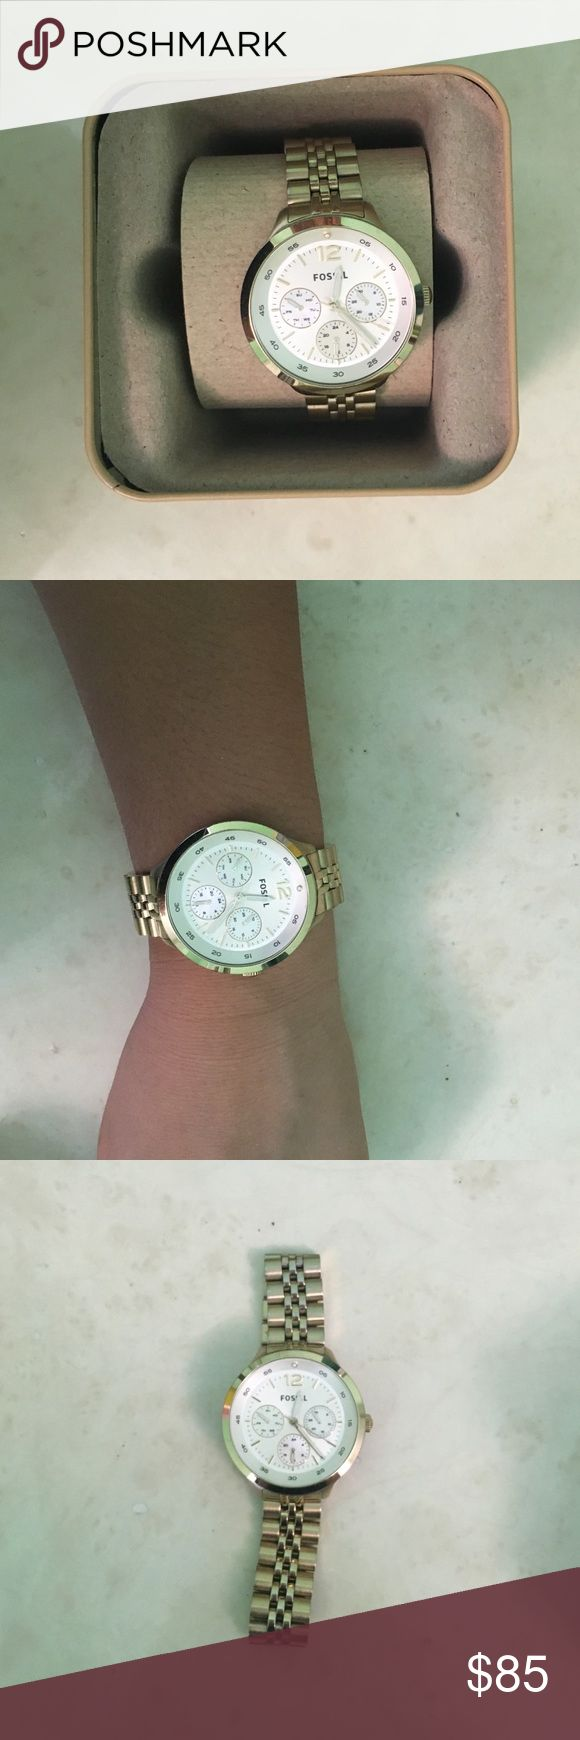 Fossil Women Watch in Gold Pre-owned in excellent condition. Used only a few times. Watch batteries need to be replaced. Authentic Fossil watch. Fossil Accessories Watches http://www.thesterlingsilver.com/product/citizen-watch-jolie-womens-quartz-watch-wi